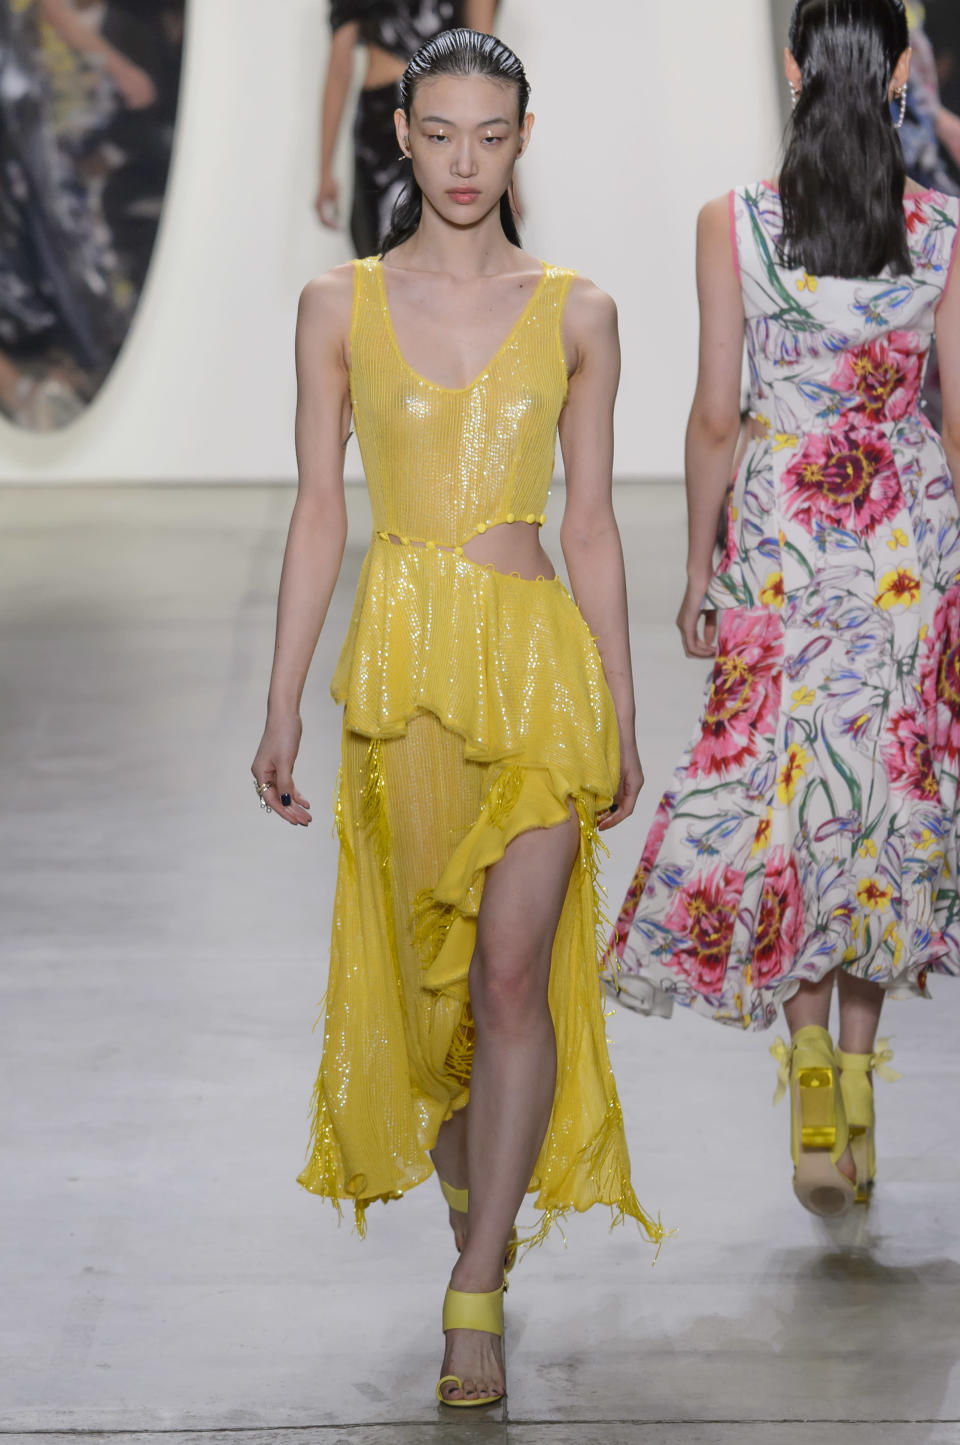 <p><i>Model wears a yellow sparkling dress with cutouts from the SS18 Prabal Gurung collection. (Photo: ImaxTree) </i></p>